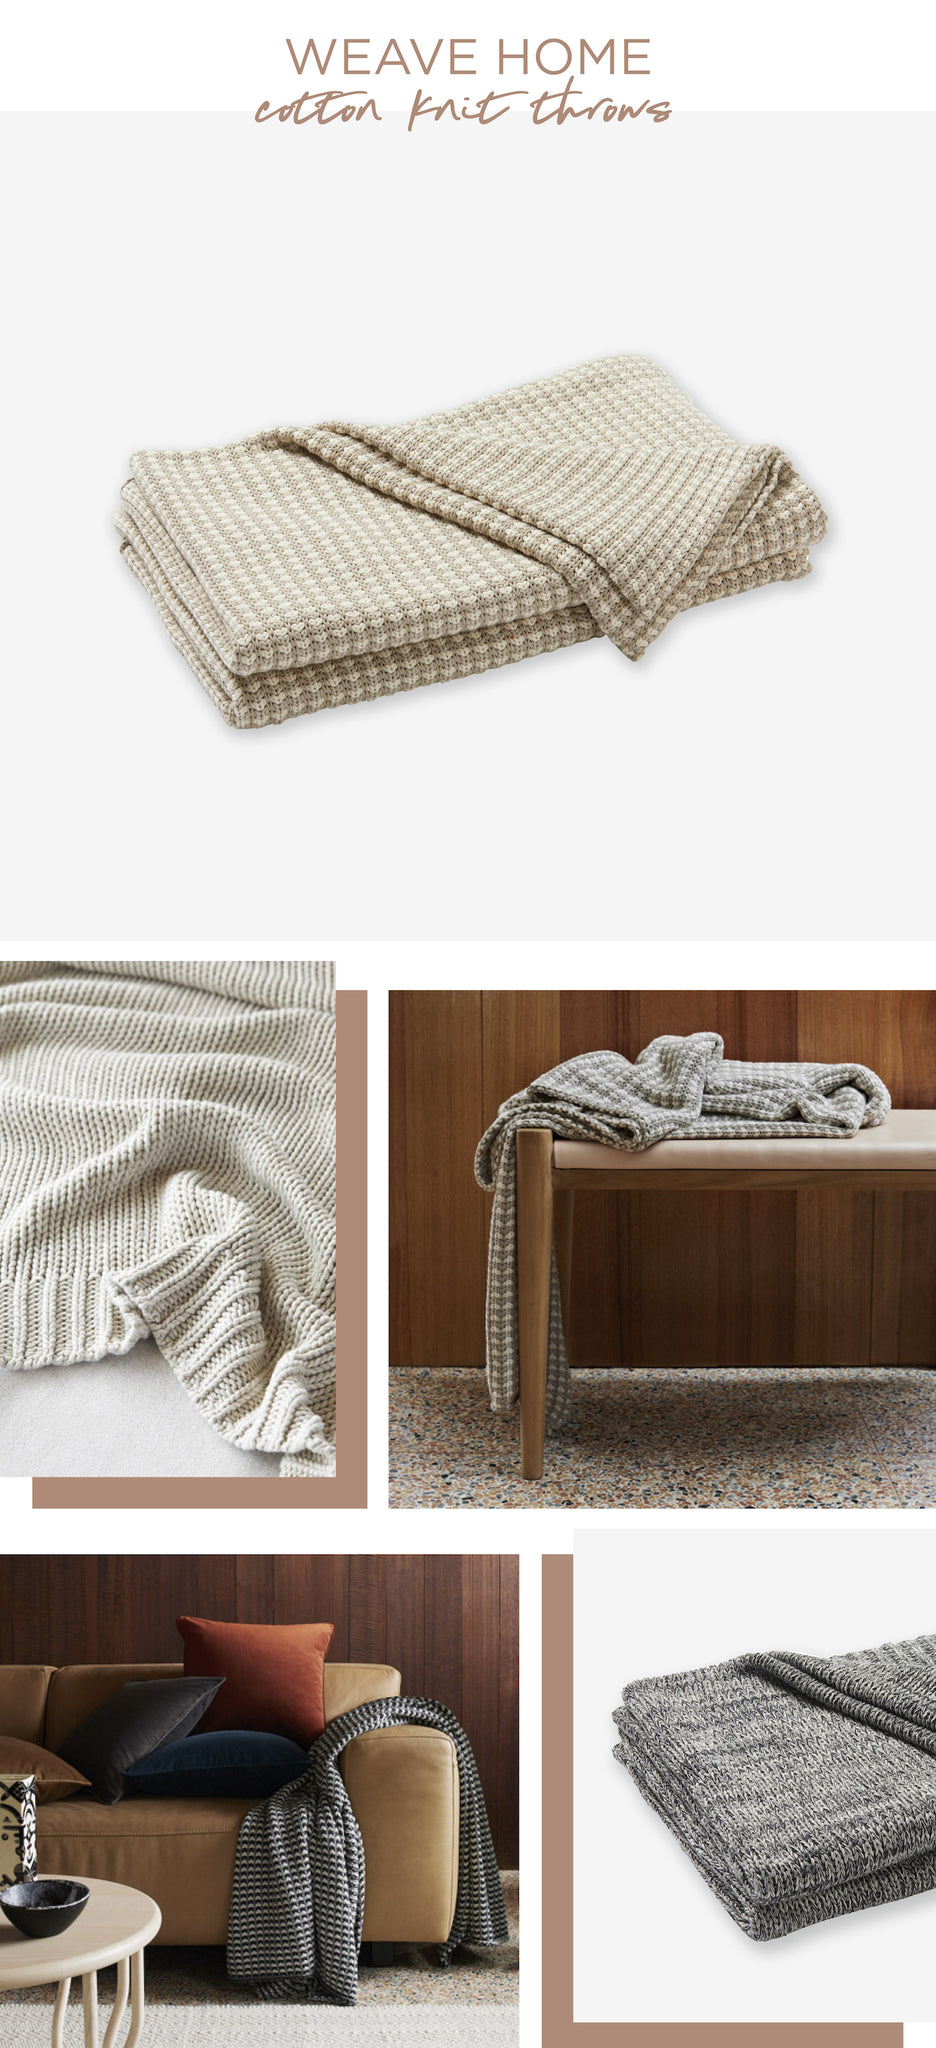 Simple & Natural - Weave Home - Cotton Knit Throws